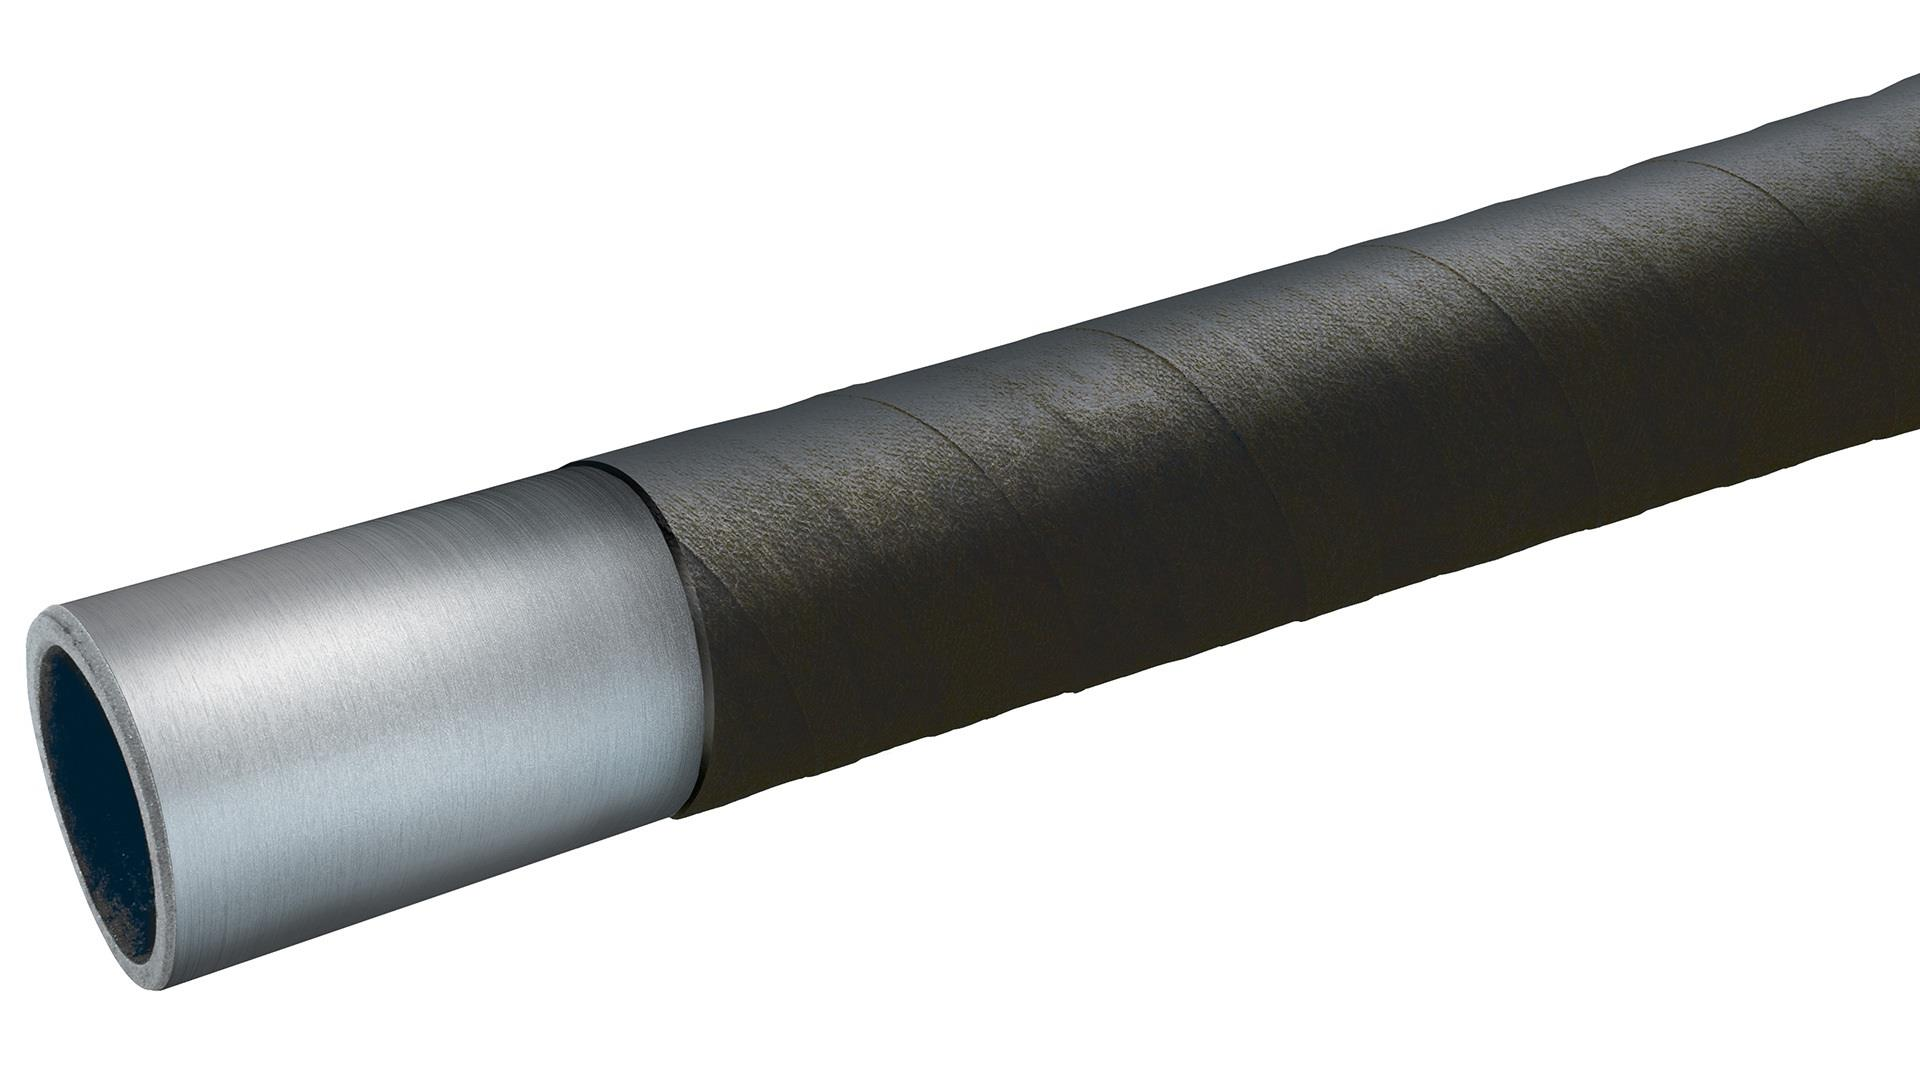 Render of Tubo-Wrap external wrap applied on pipe.